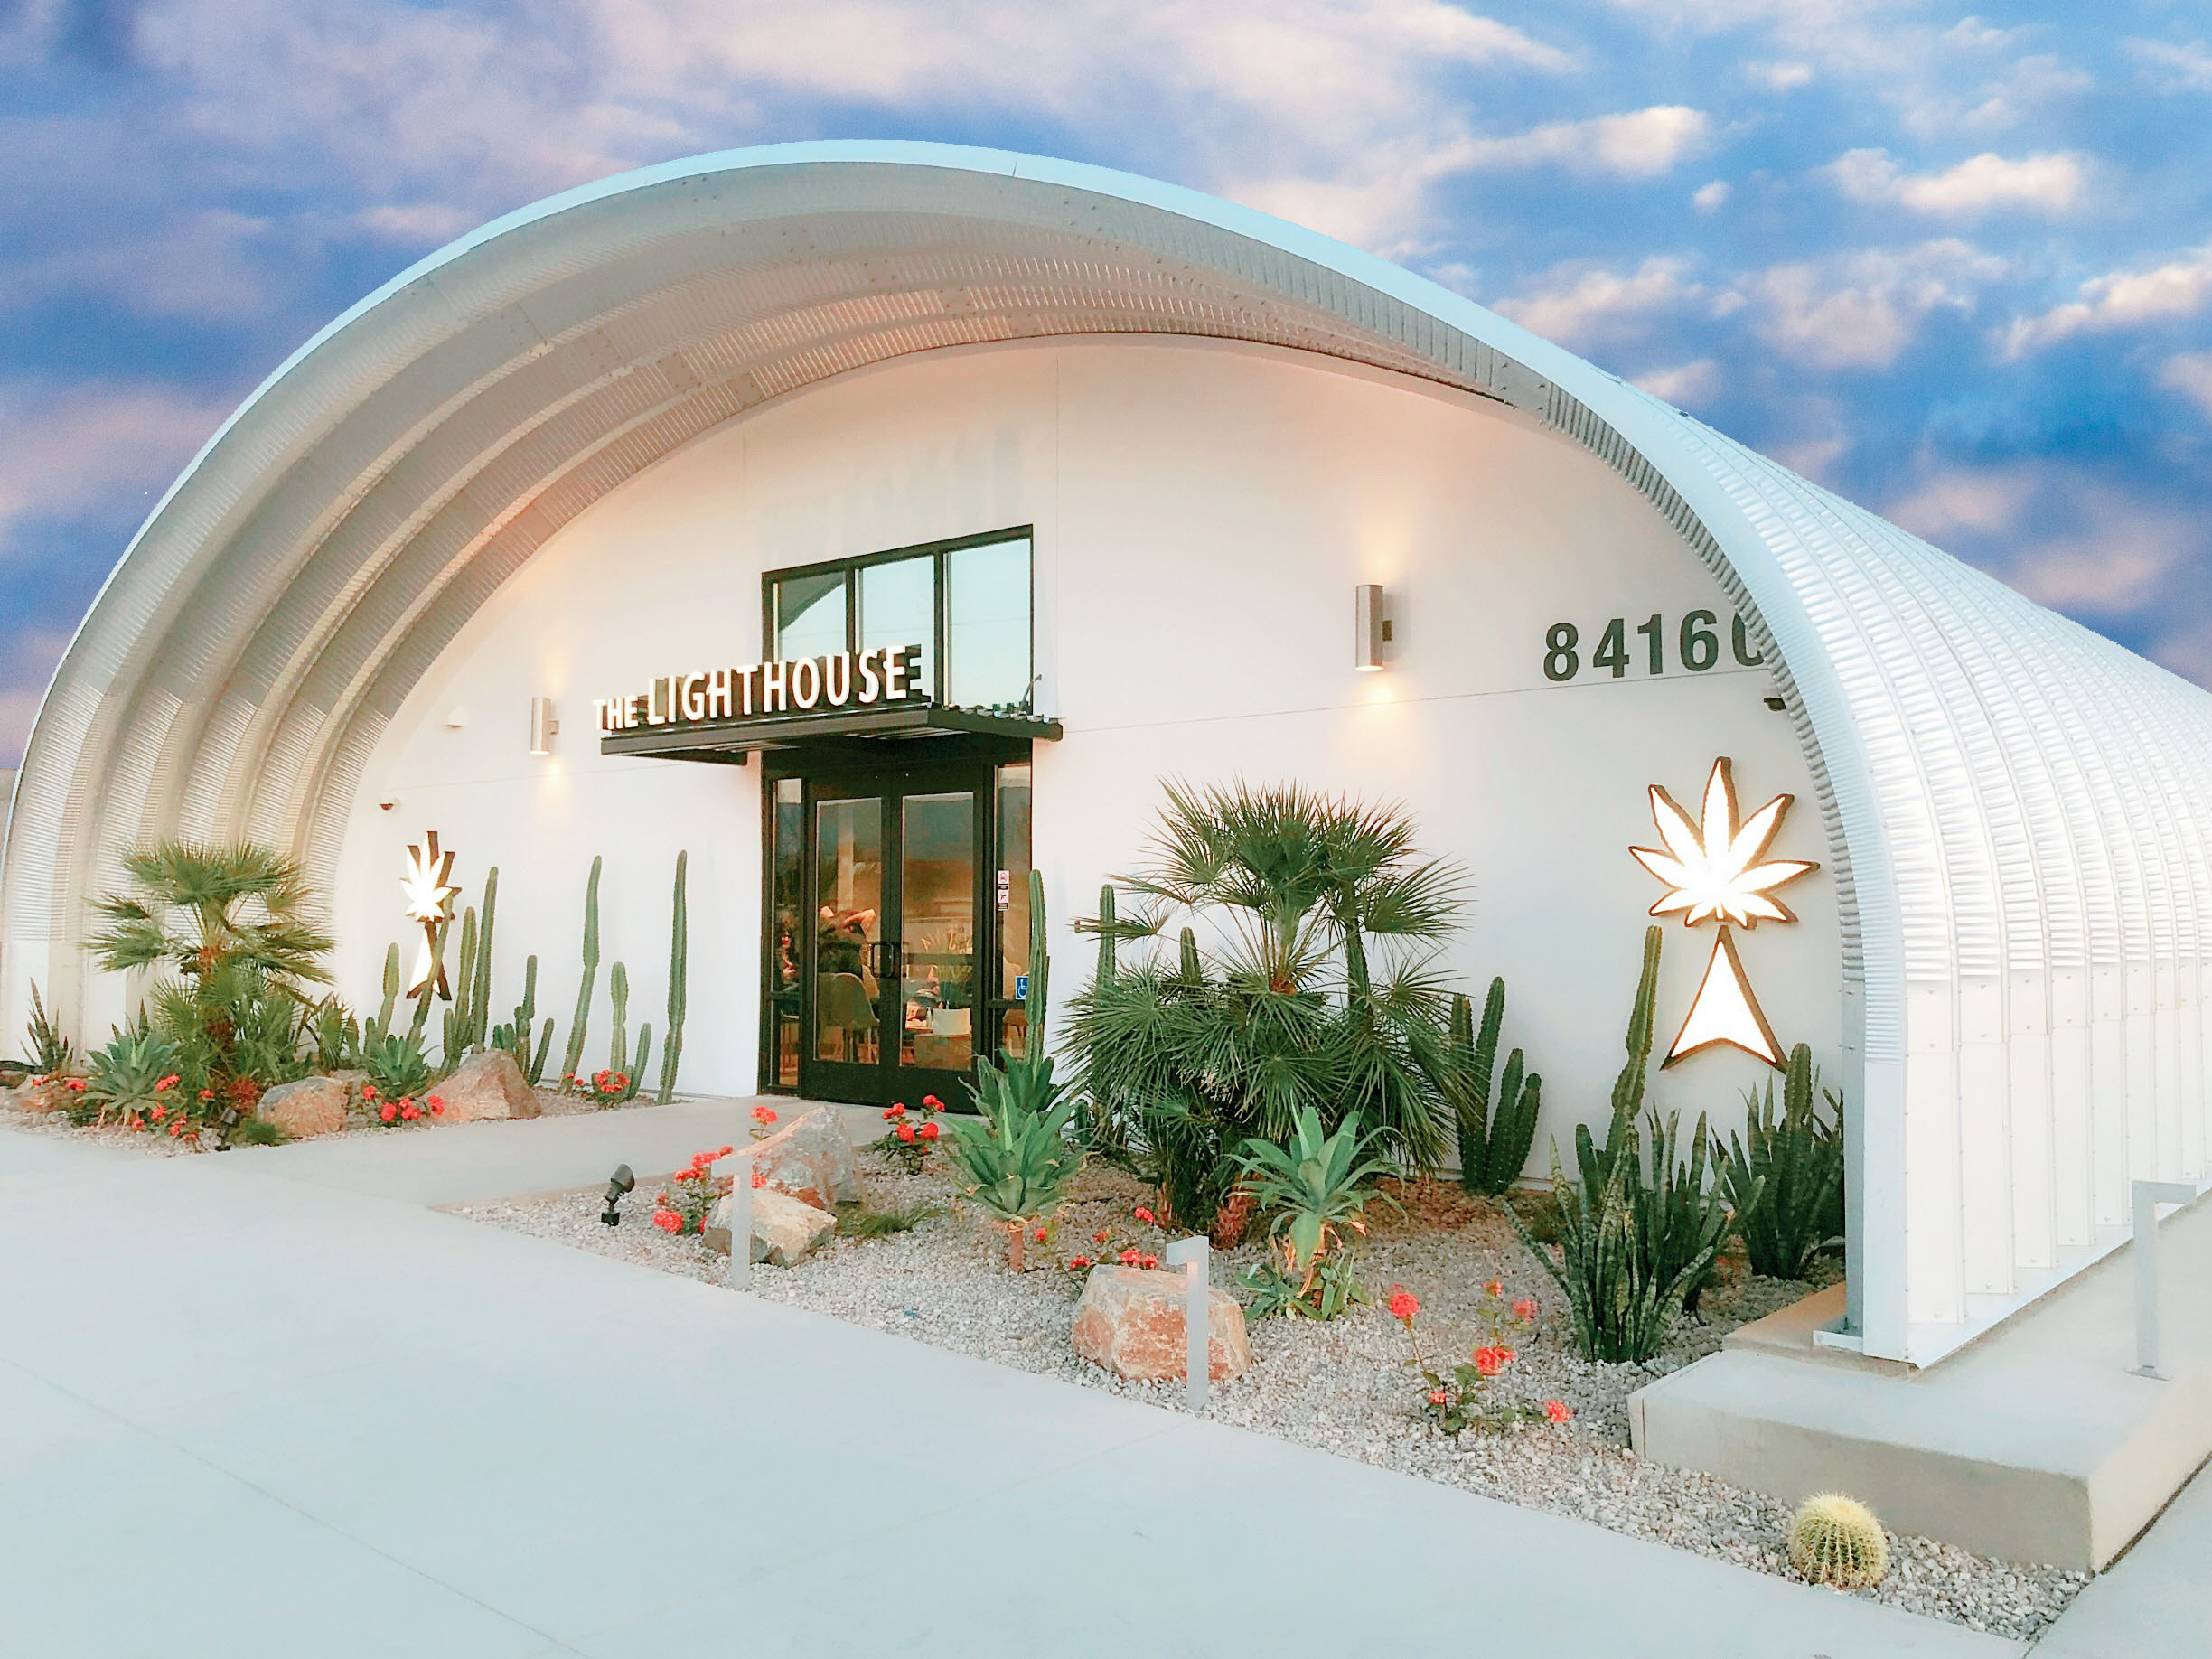 The Lighthouse Dispensary, 84160 Avenue 48, Coachella, CA 92236